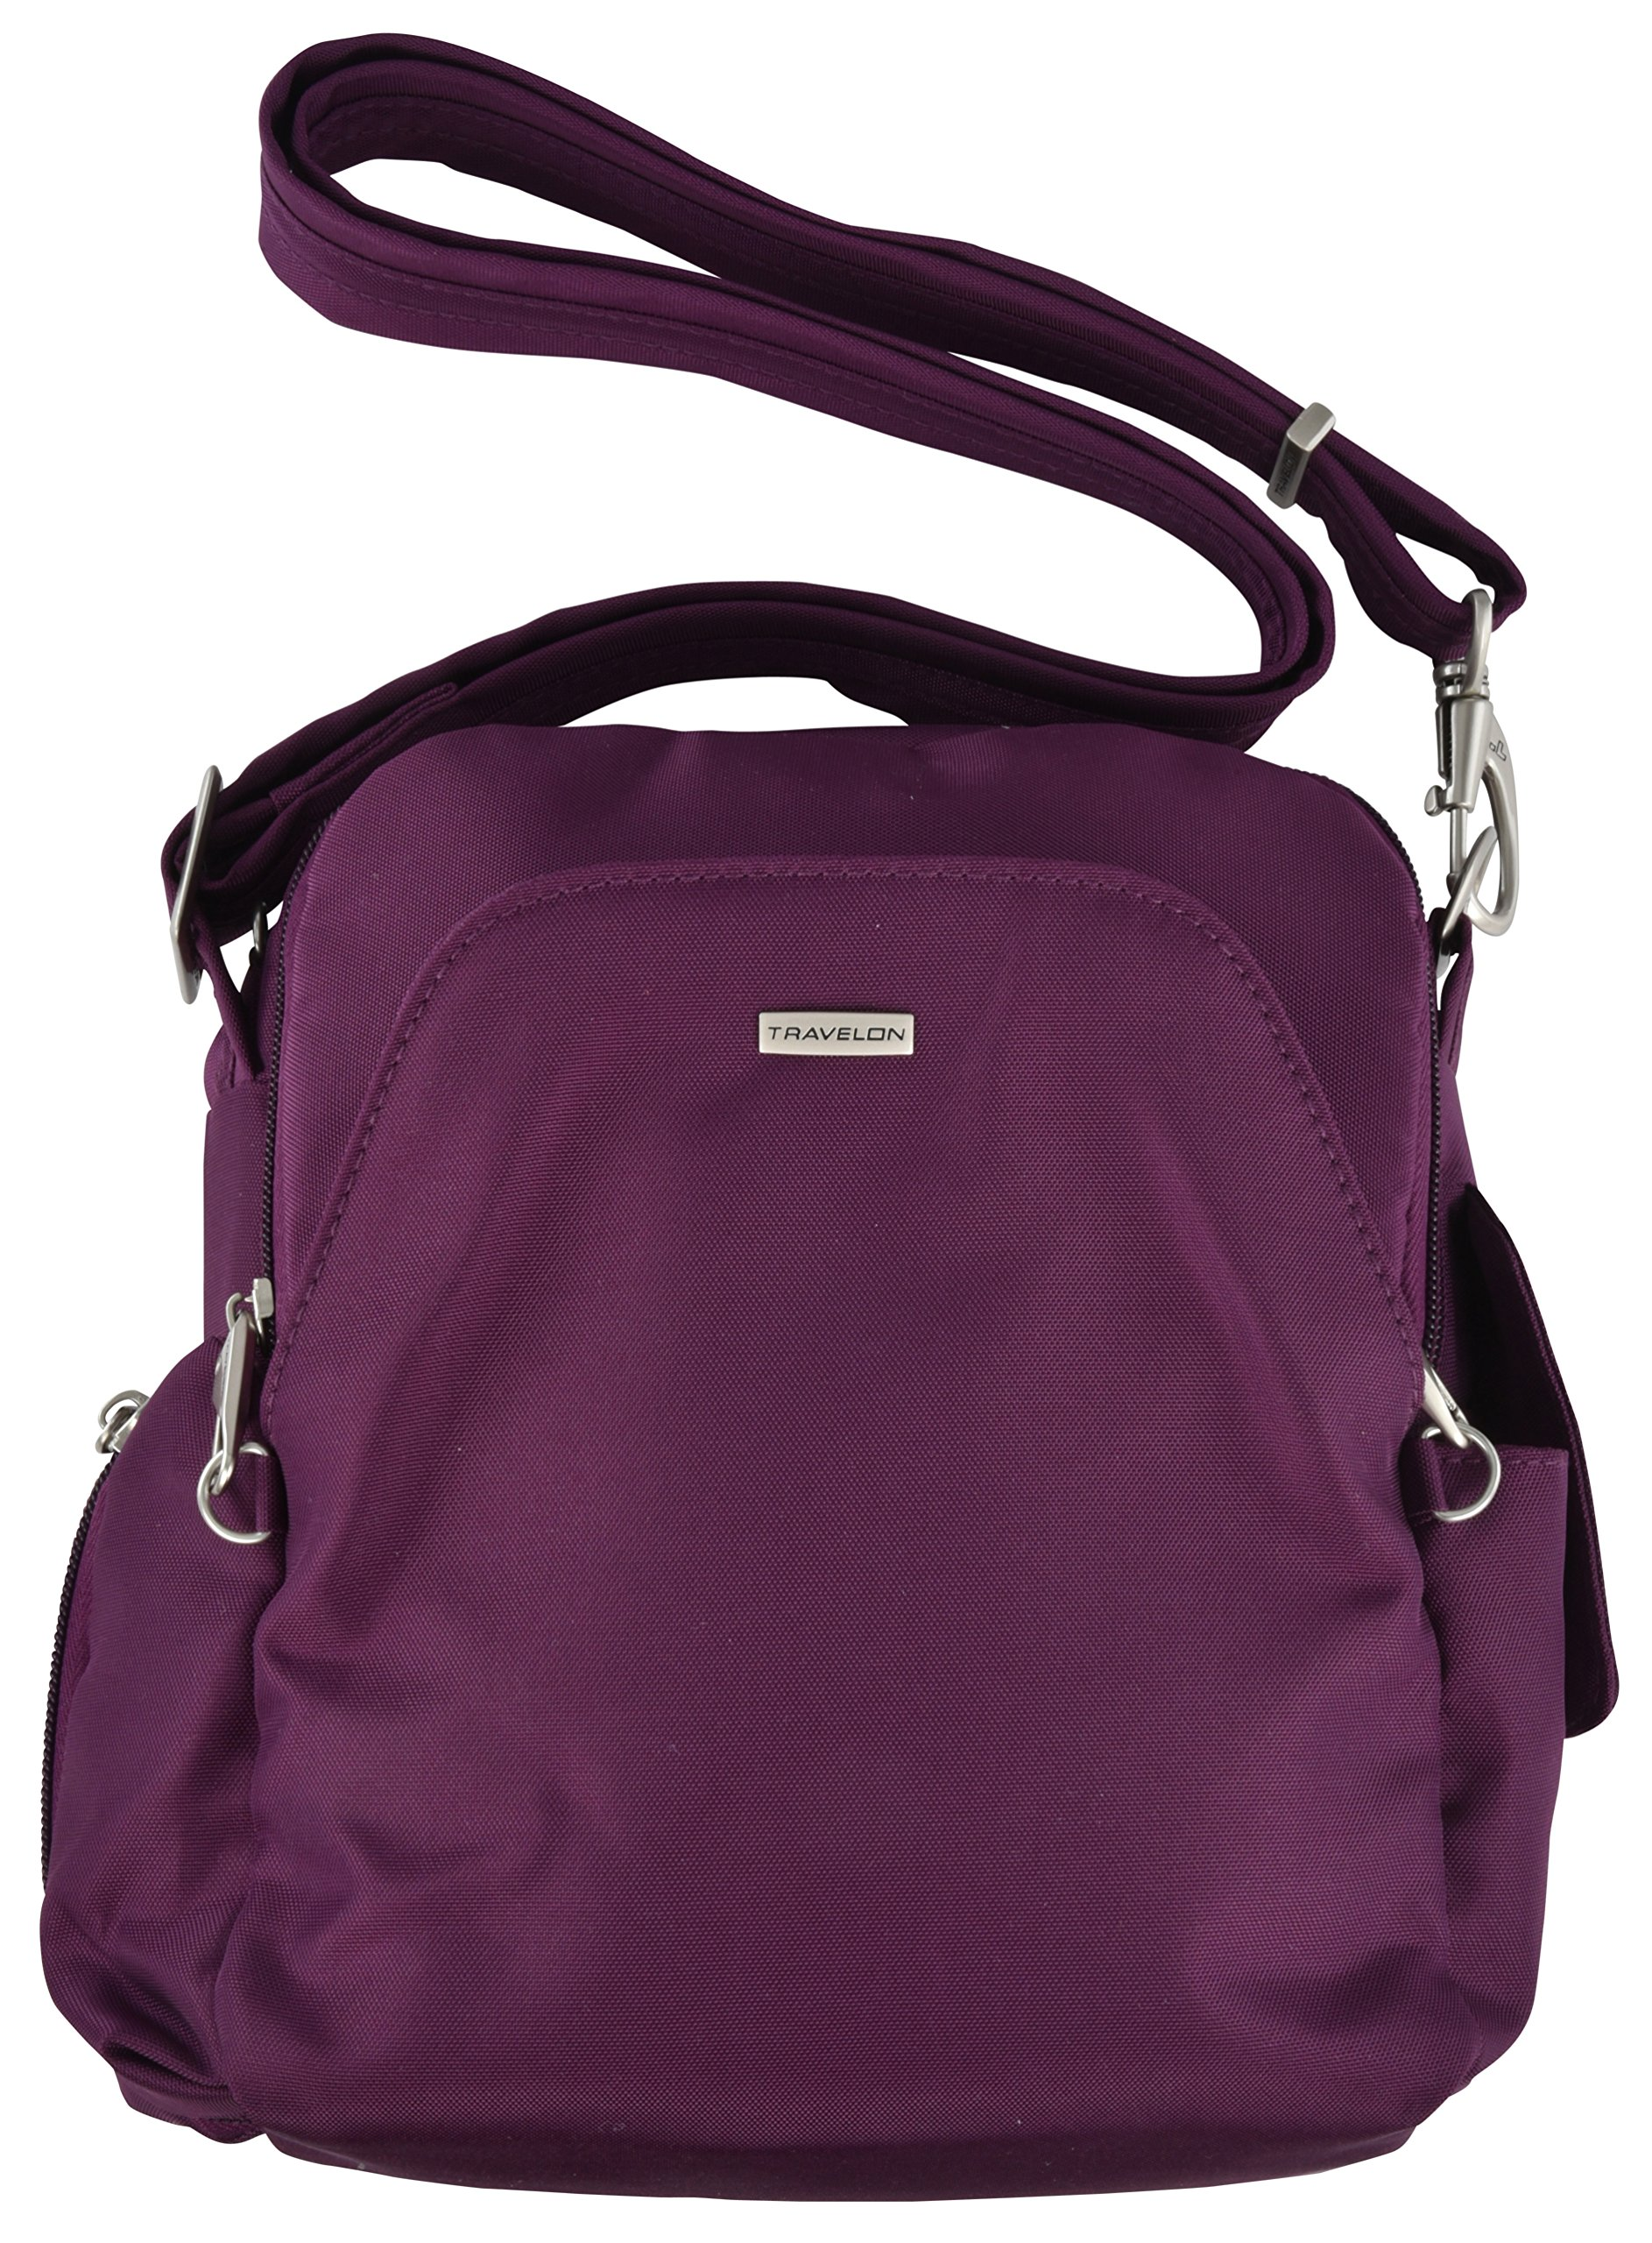 Travelon Anti-Theft Travel Bag (B Berry)